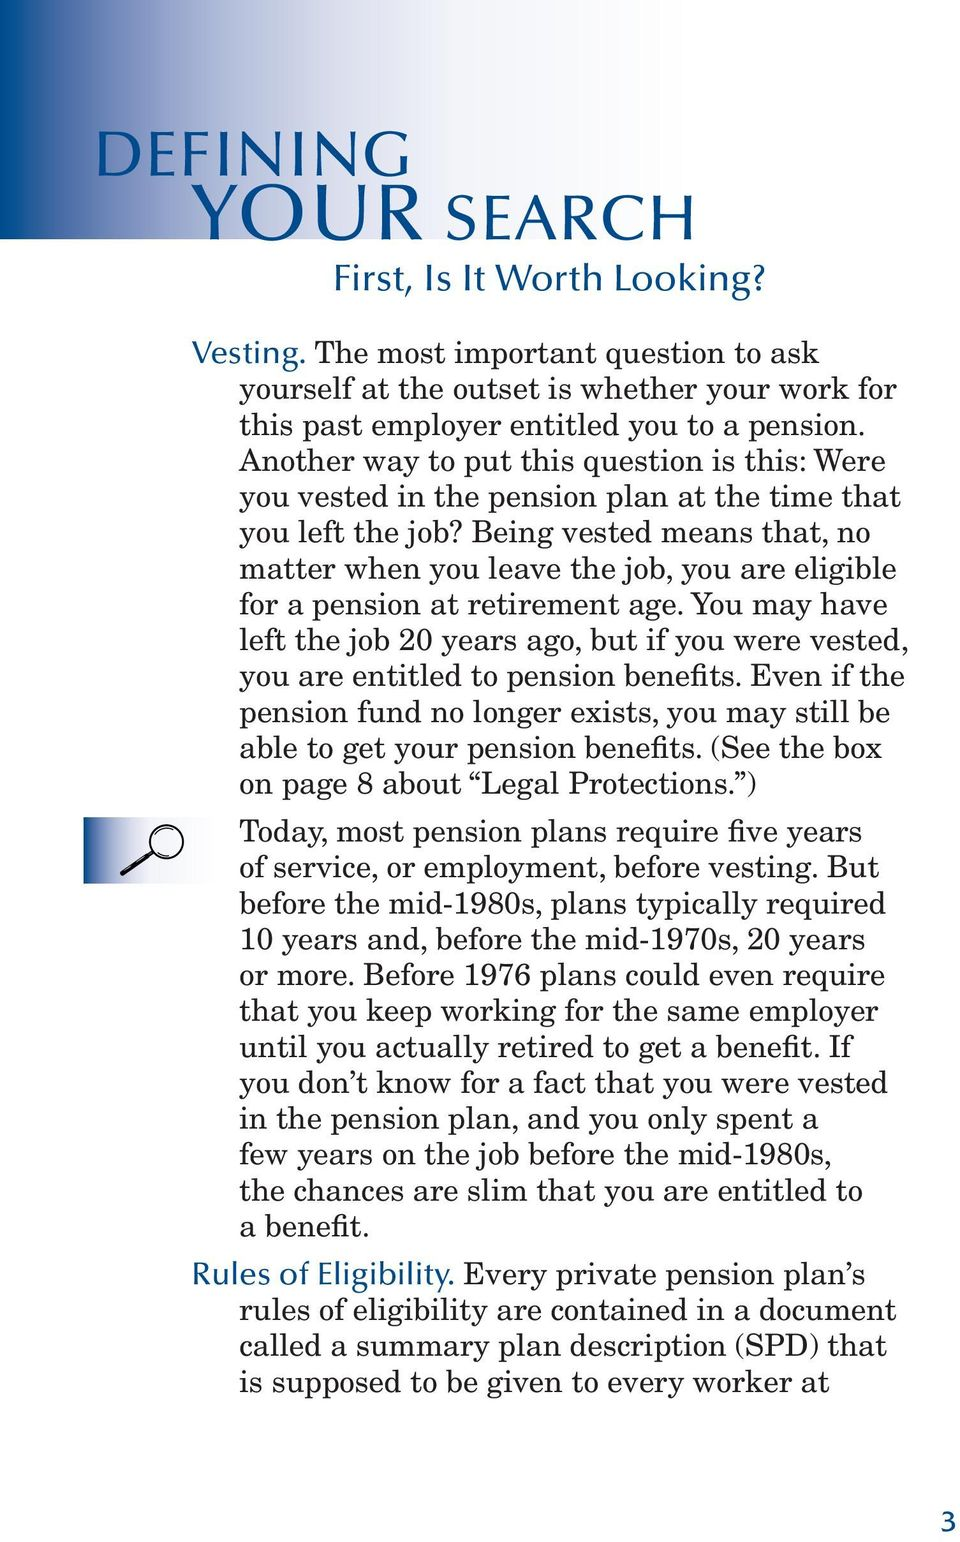 Being vested means that, no matter when you leave the job, you are eligible for a pension at retirement age.